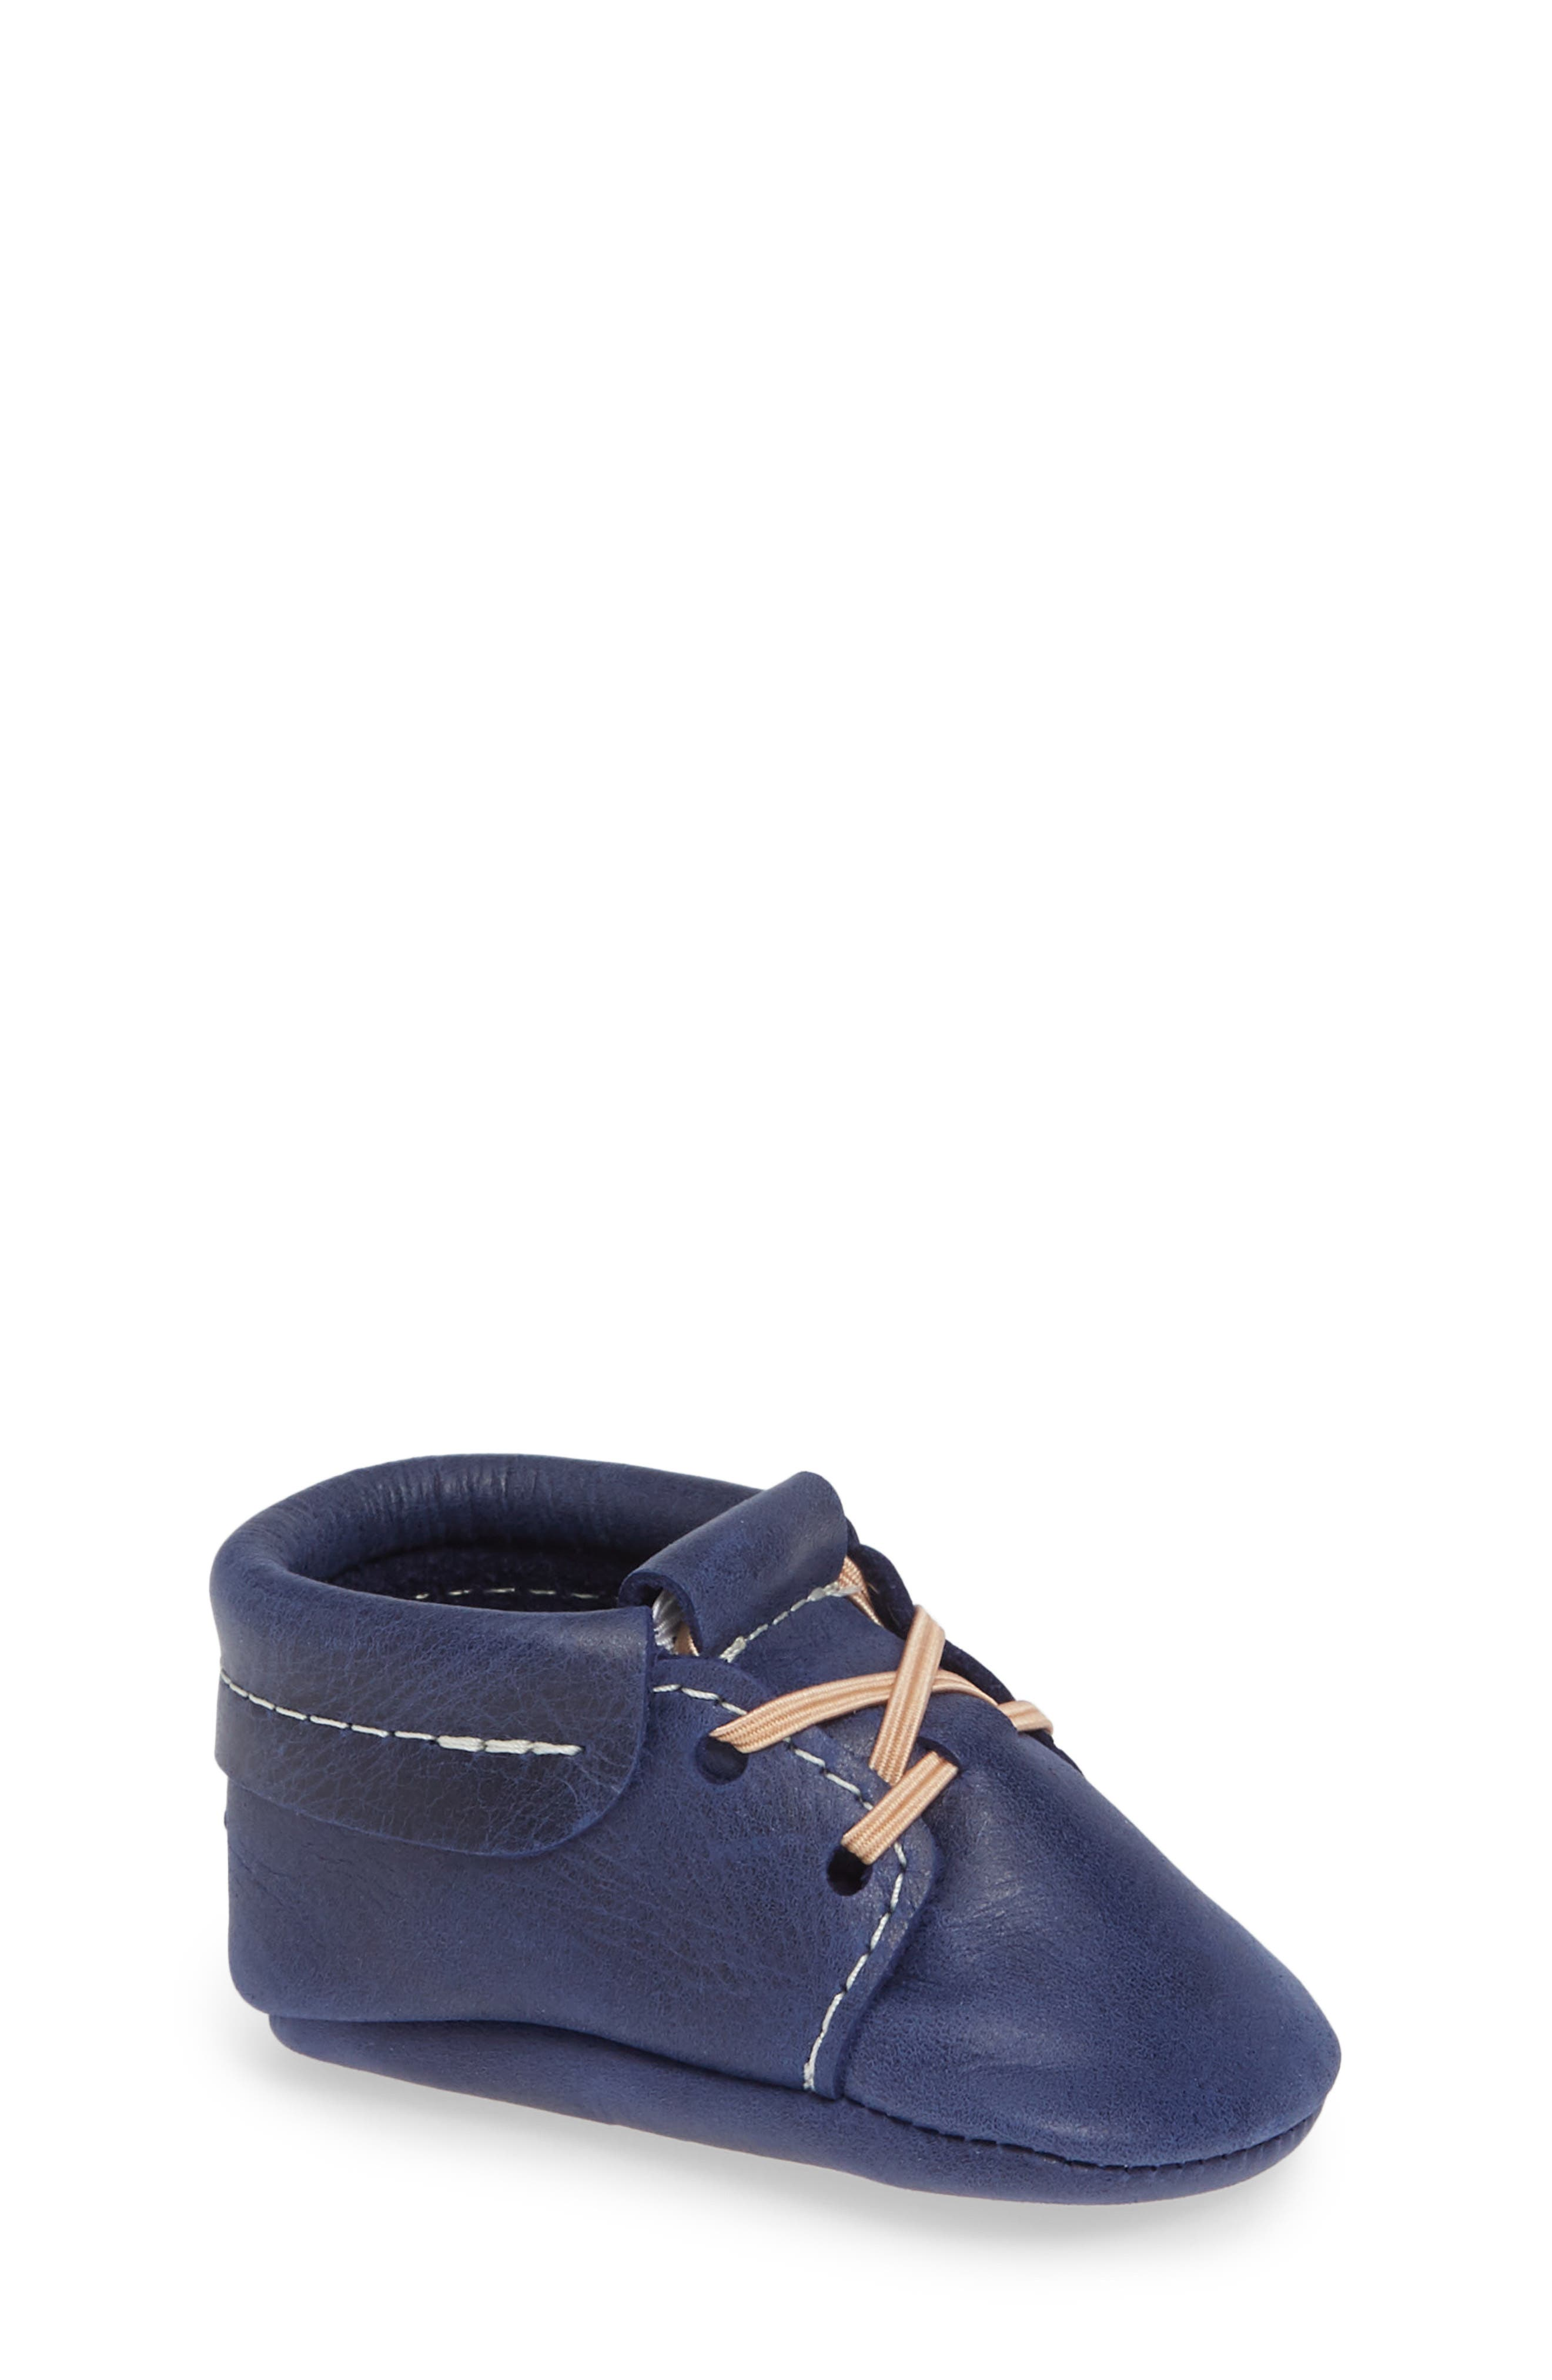 City Leather Moccasin,                         Main,                         color, 410